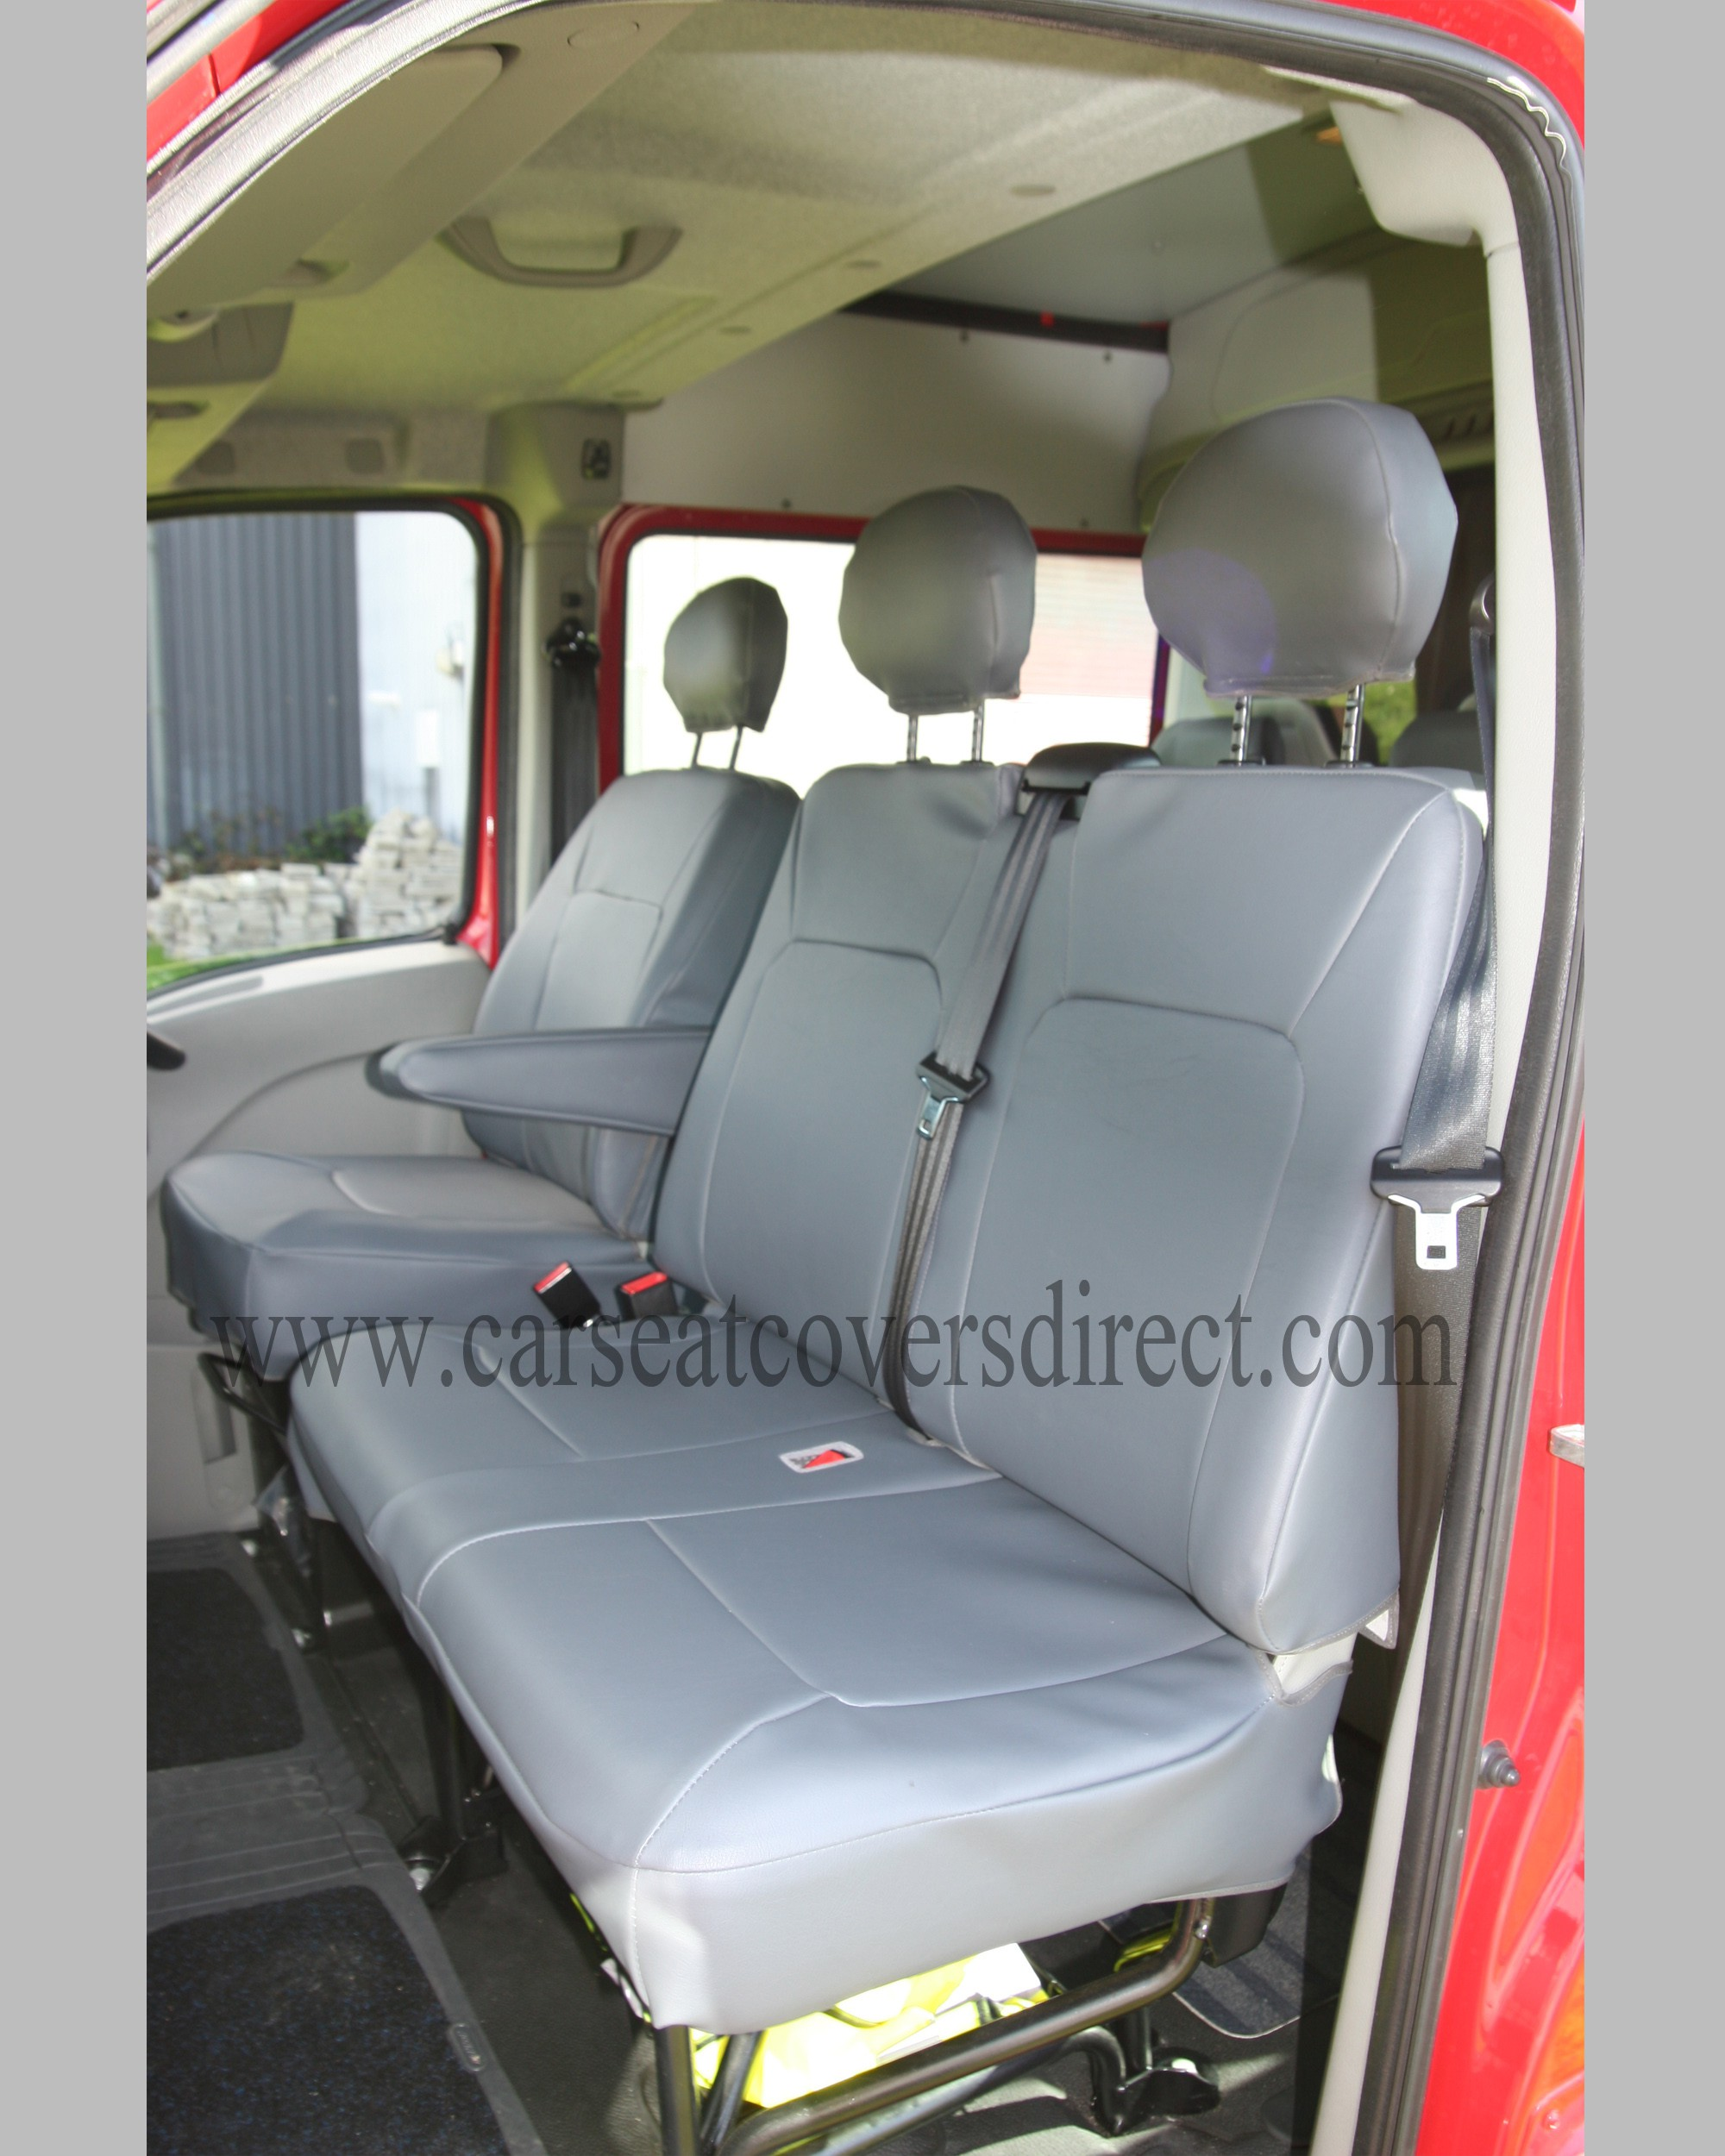 RENAULT MASTER 2ND GEN Seat Covers Car Seat Covers Direct ...